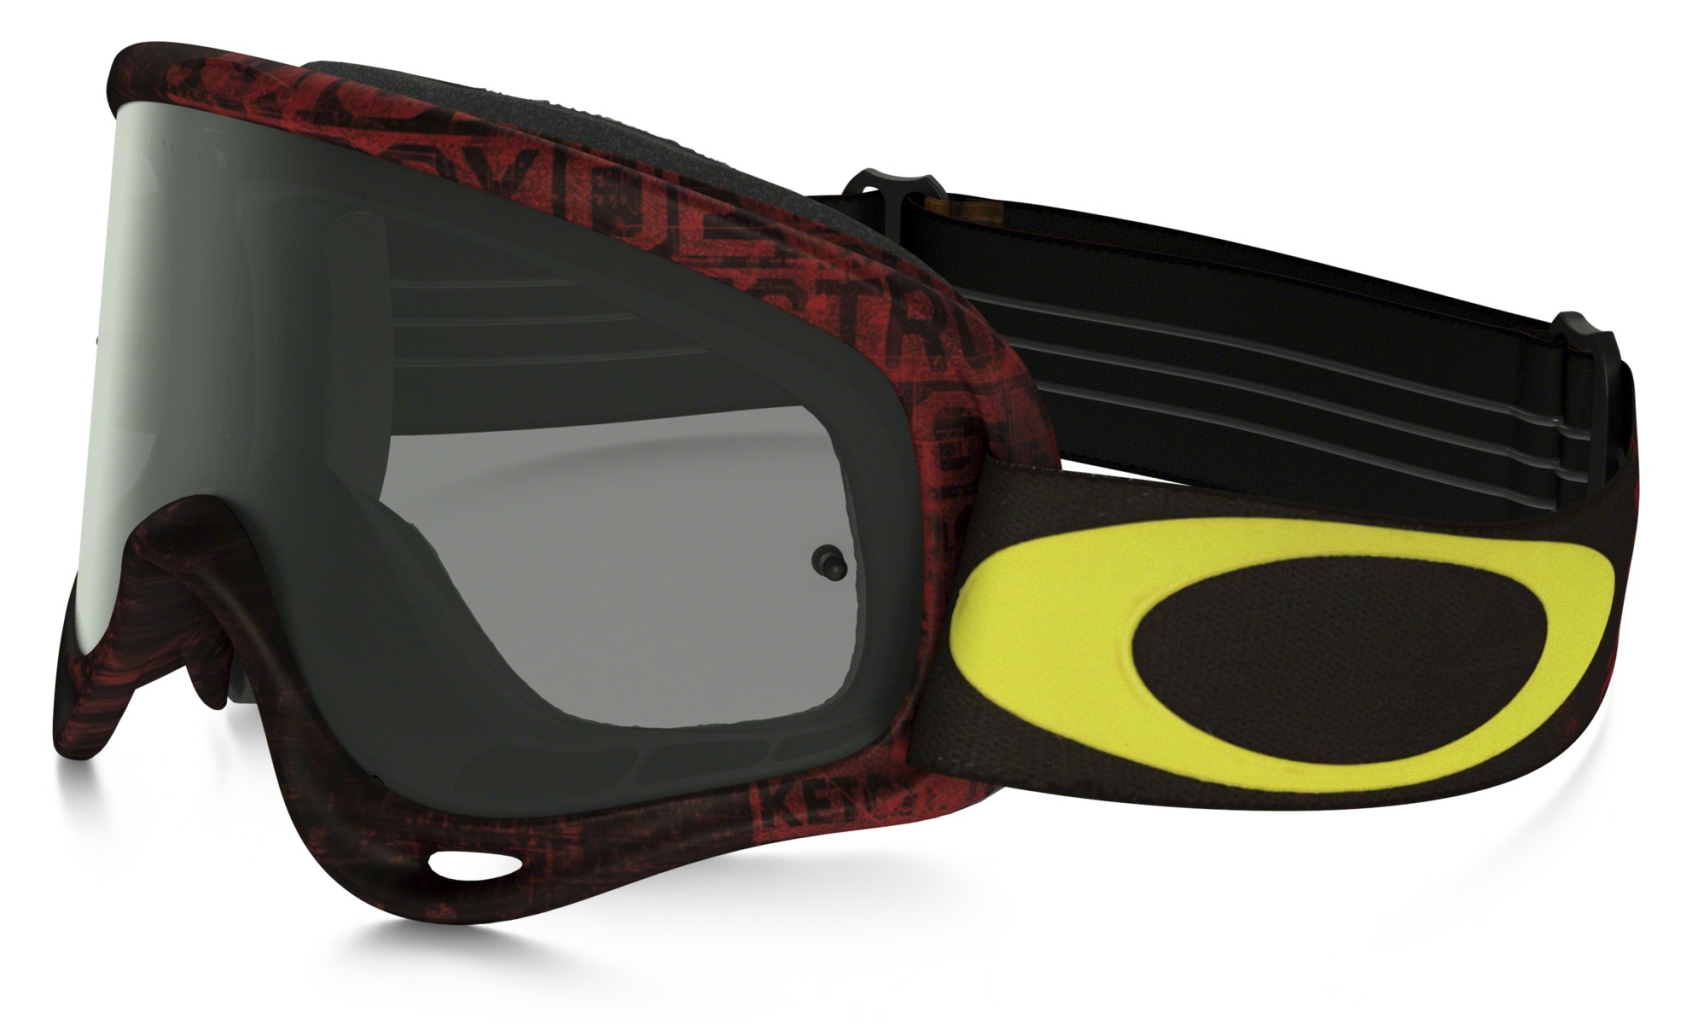 Oakley O Frame Mx Frame: DISTRESS TAGLINE RED/YELLOW Lens: DARK GREY-30